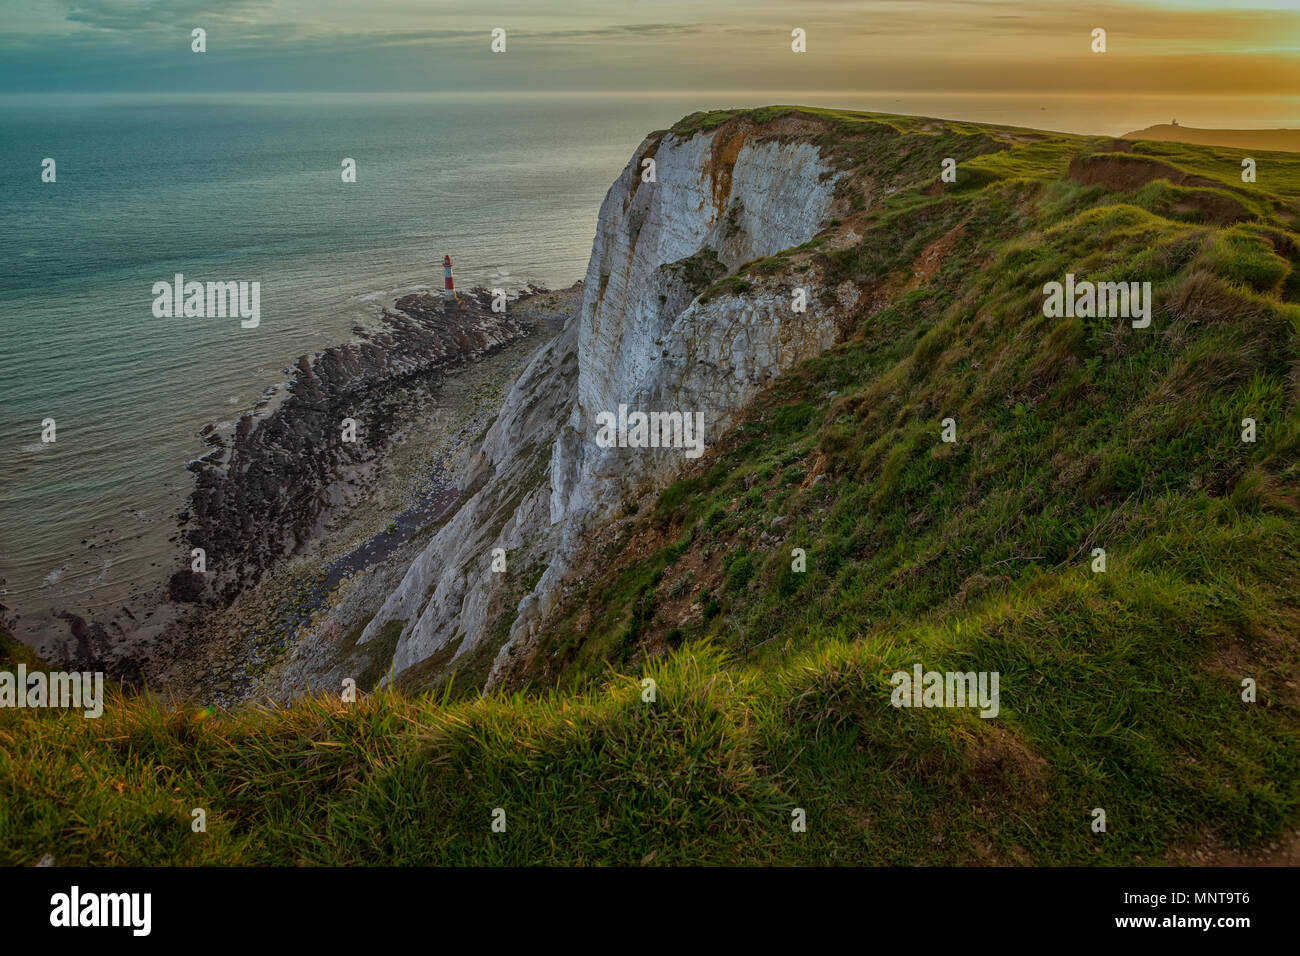 Beachy Head and the Lighthouse, South Downs National Park, England - Stock Image